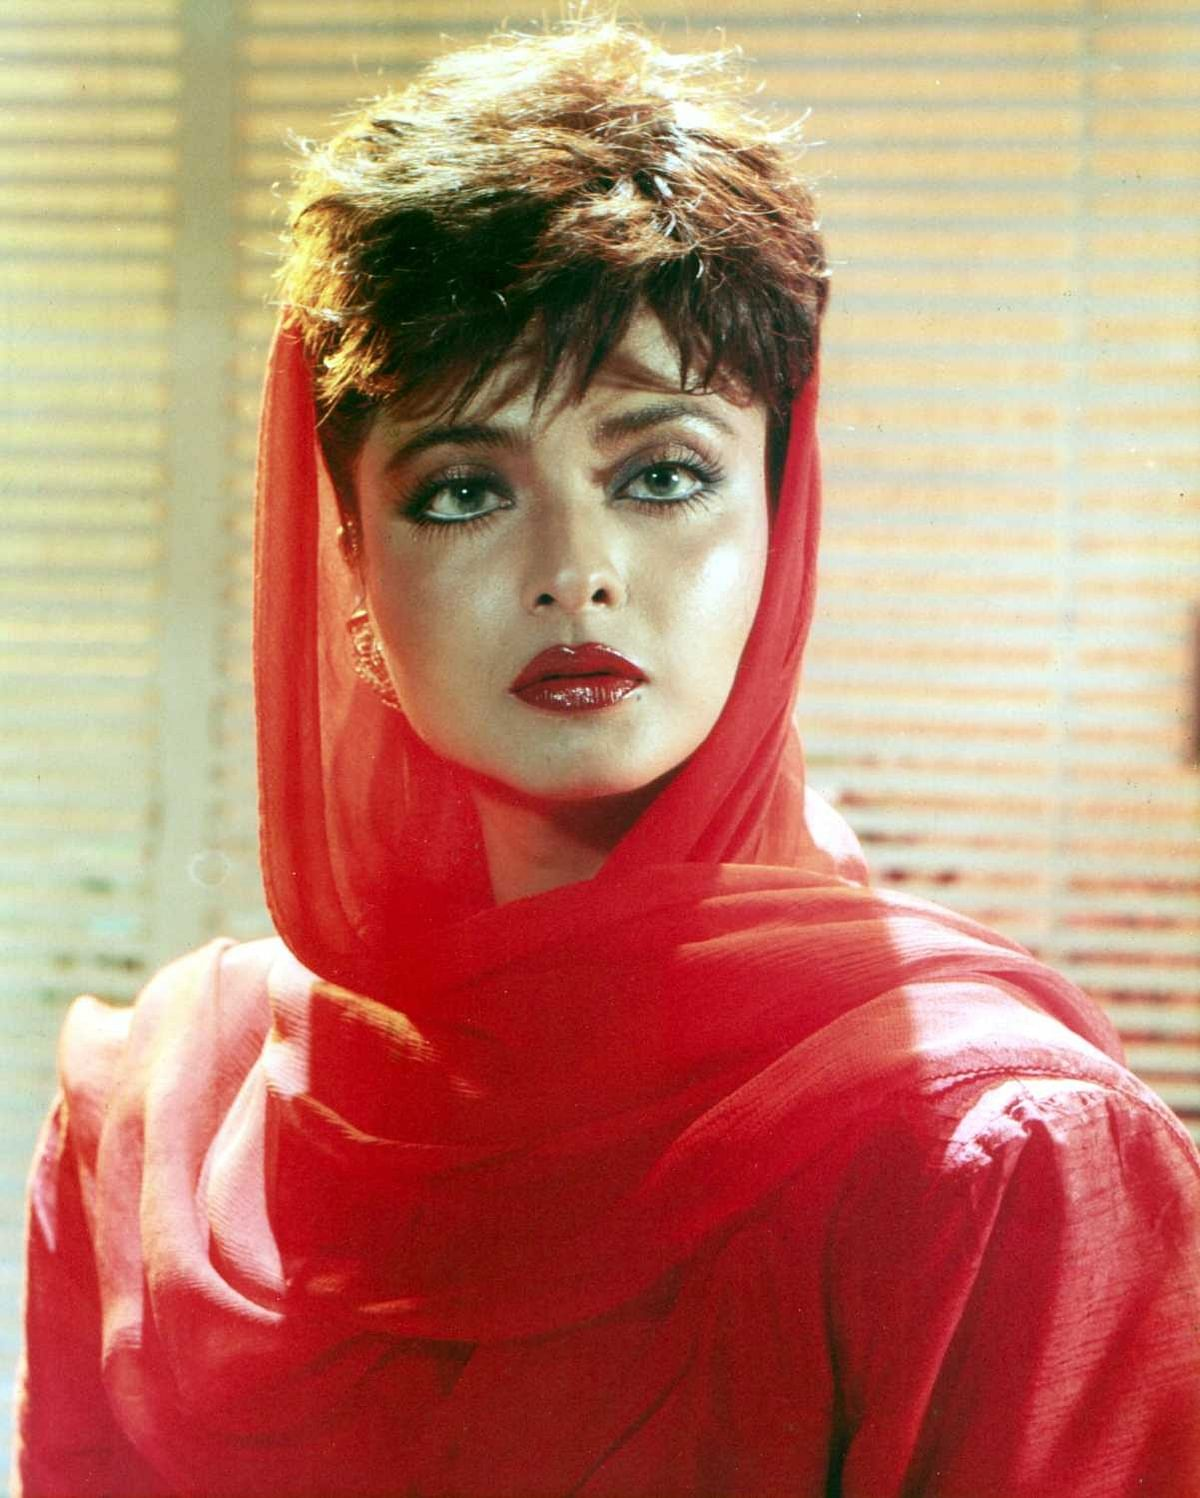 Rekha turns 65: Here's a look at some of her iconic films